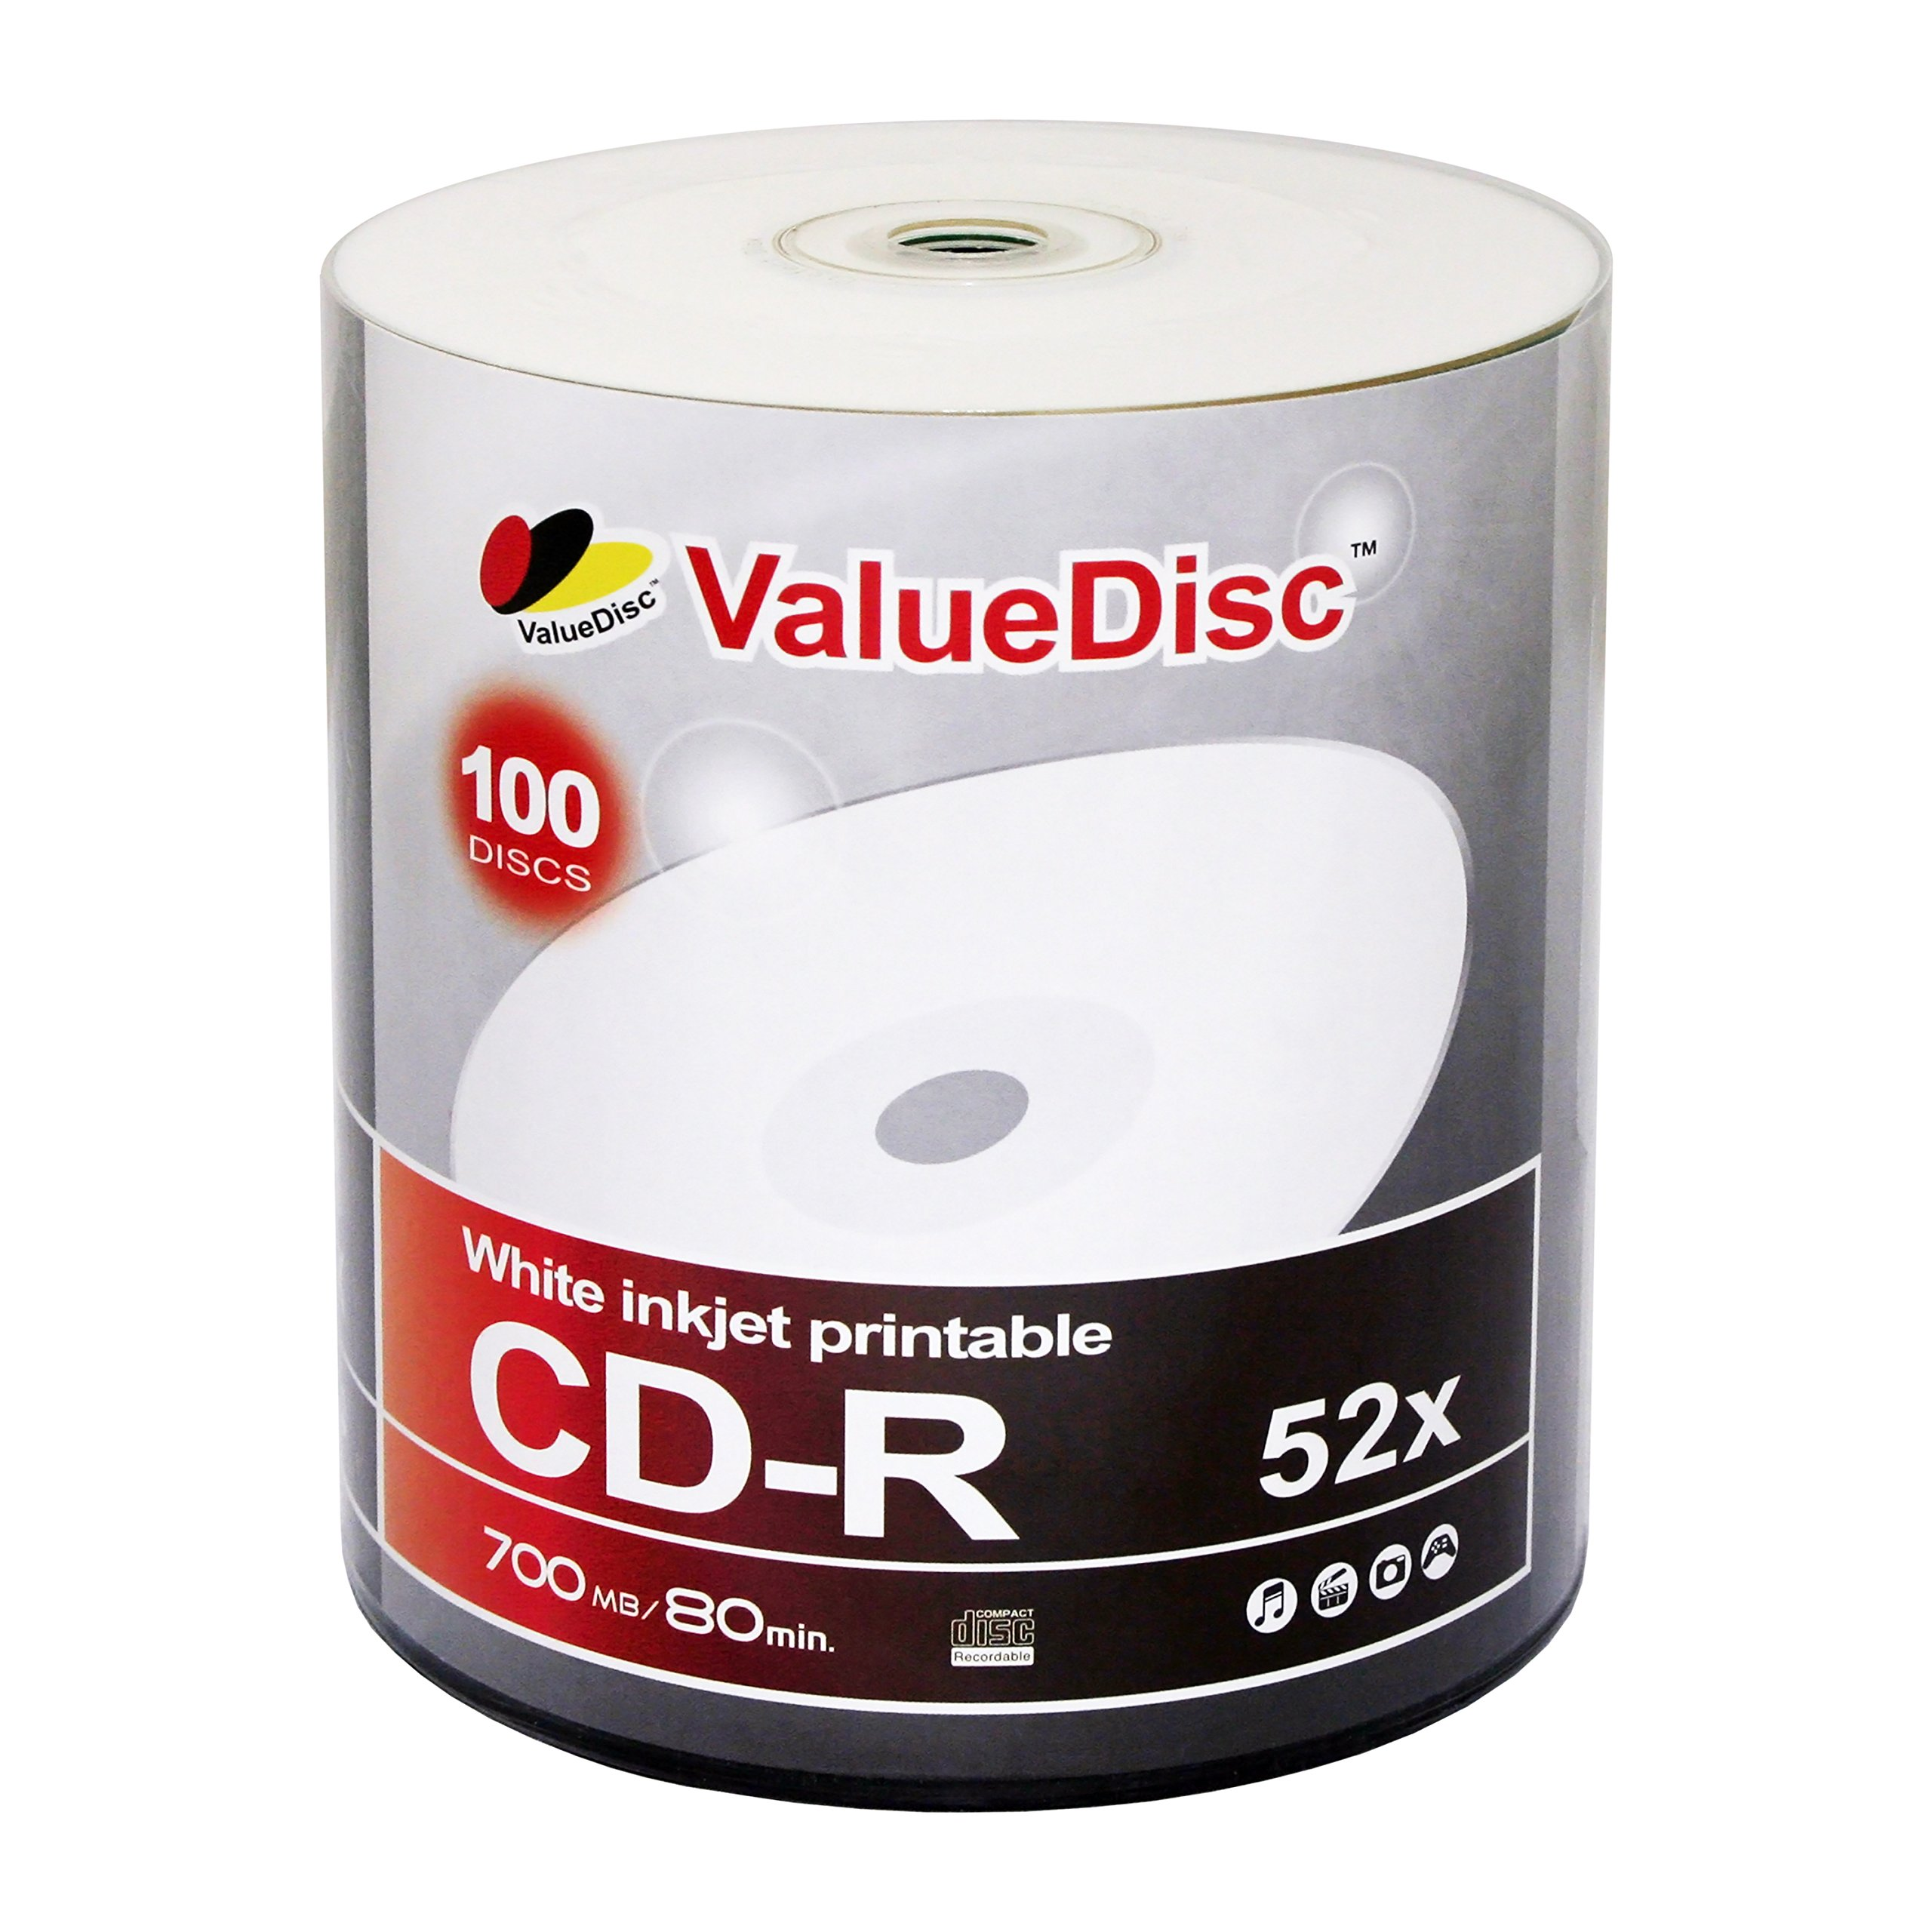 Value Disc CD-R 80min 700MB 52X White Inkjet Printable 100 Pack